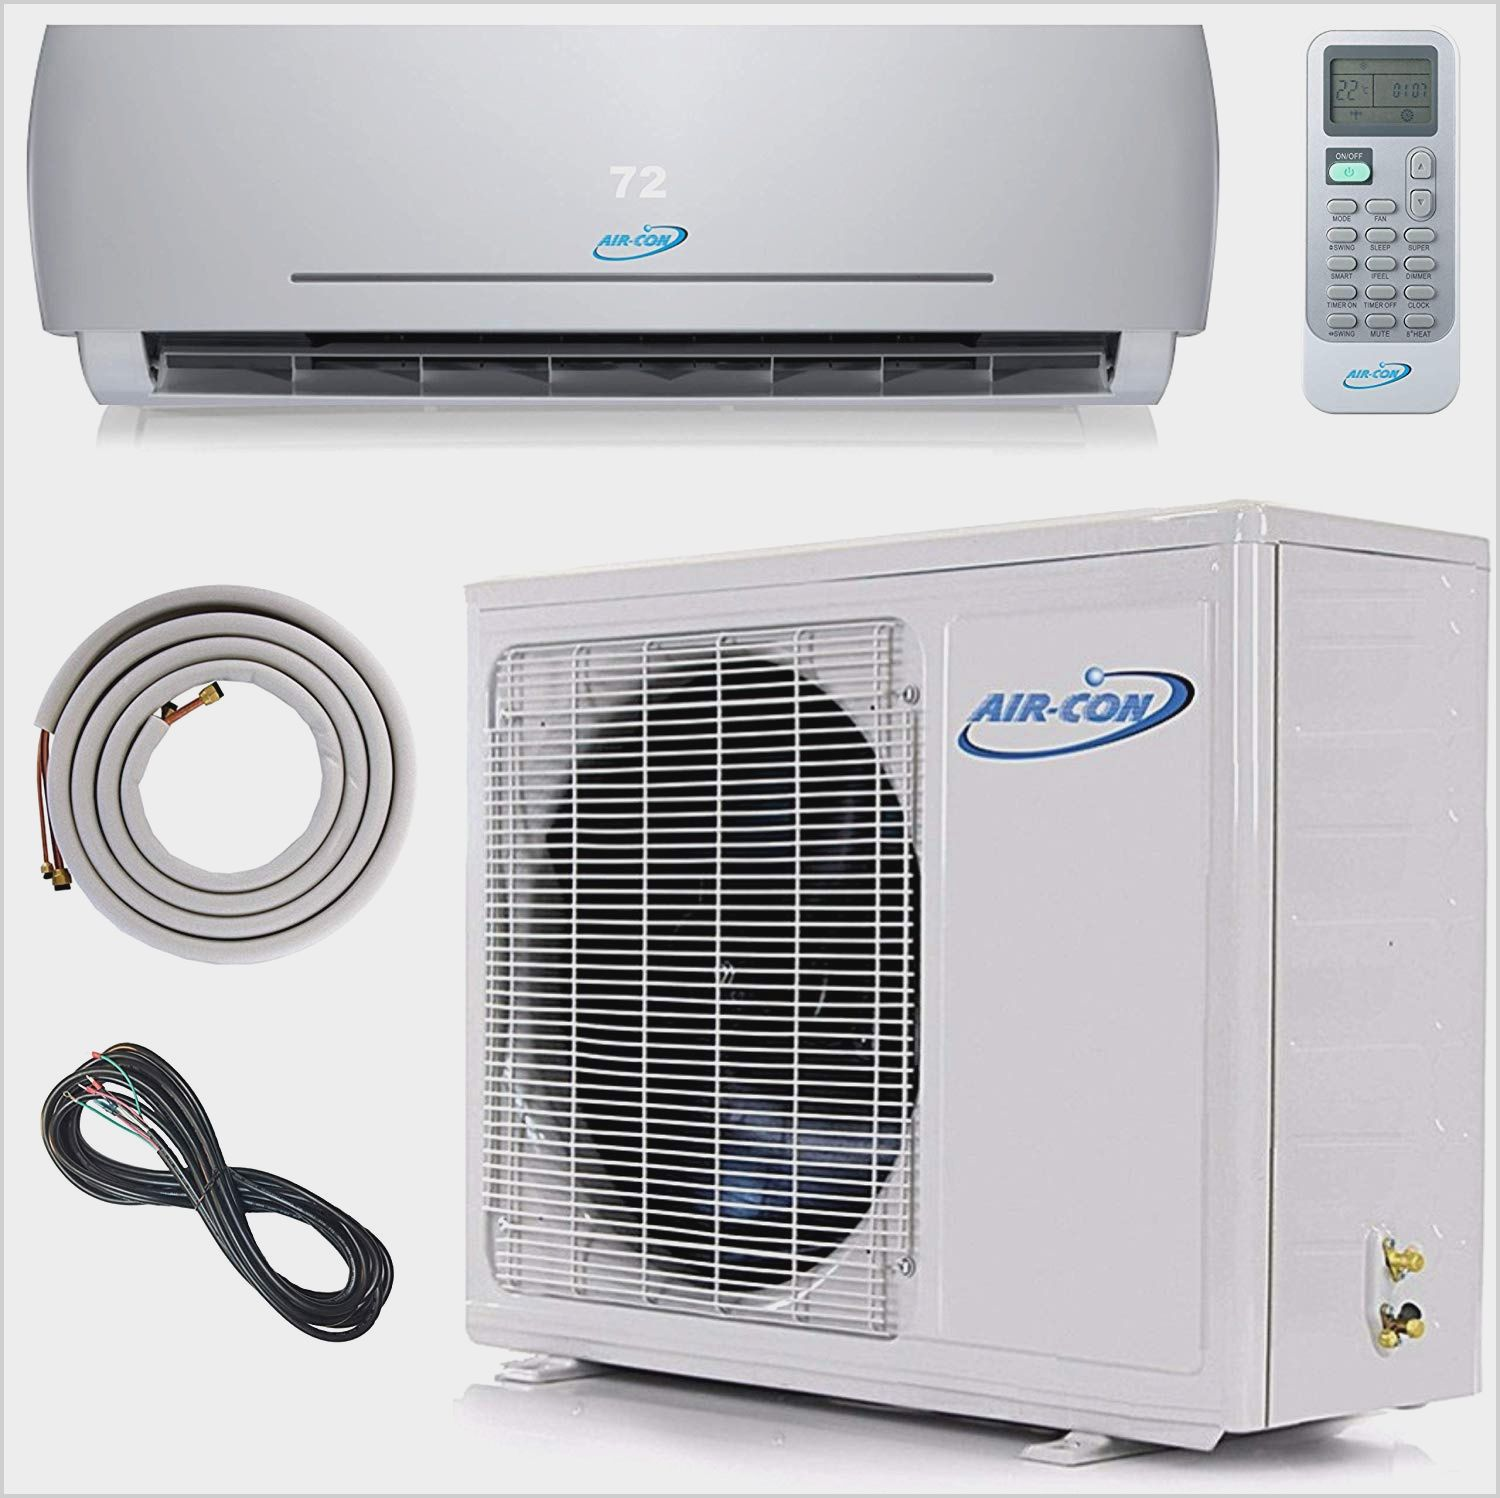 Small Aircon Unit For Bedroom In 2020 Ductless Air Conditioner Ac Heating Heating Systems